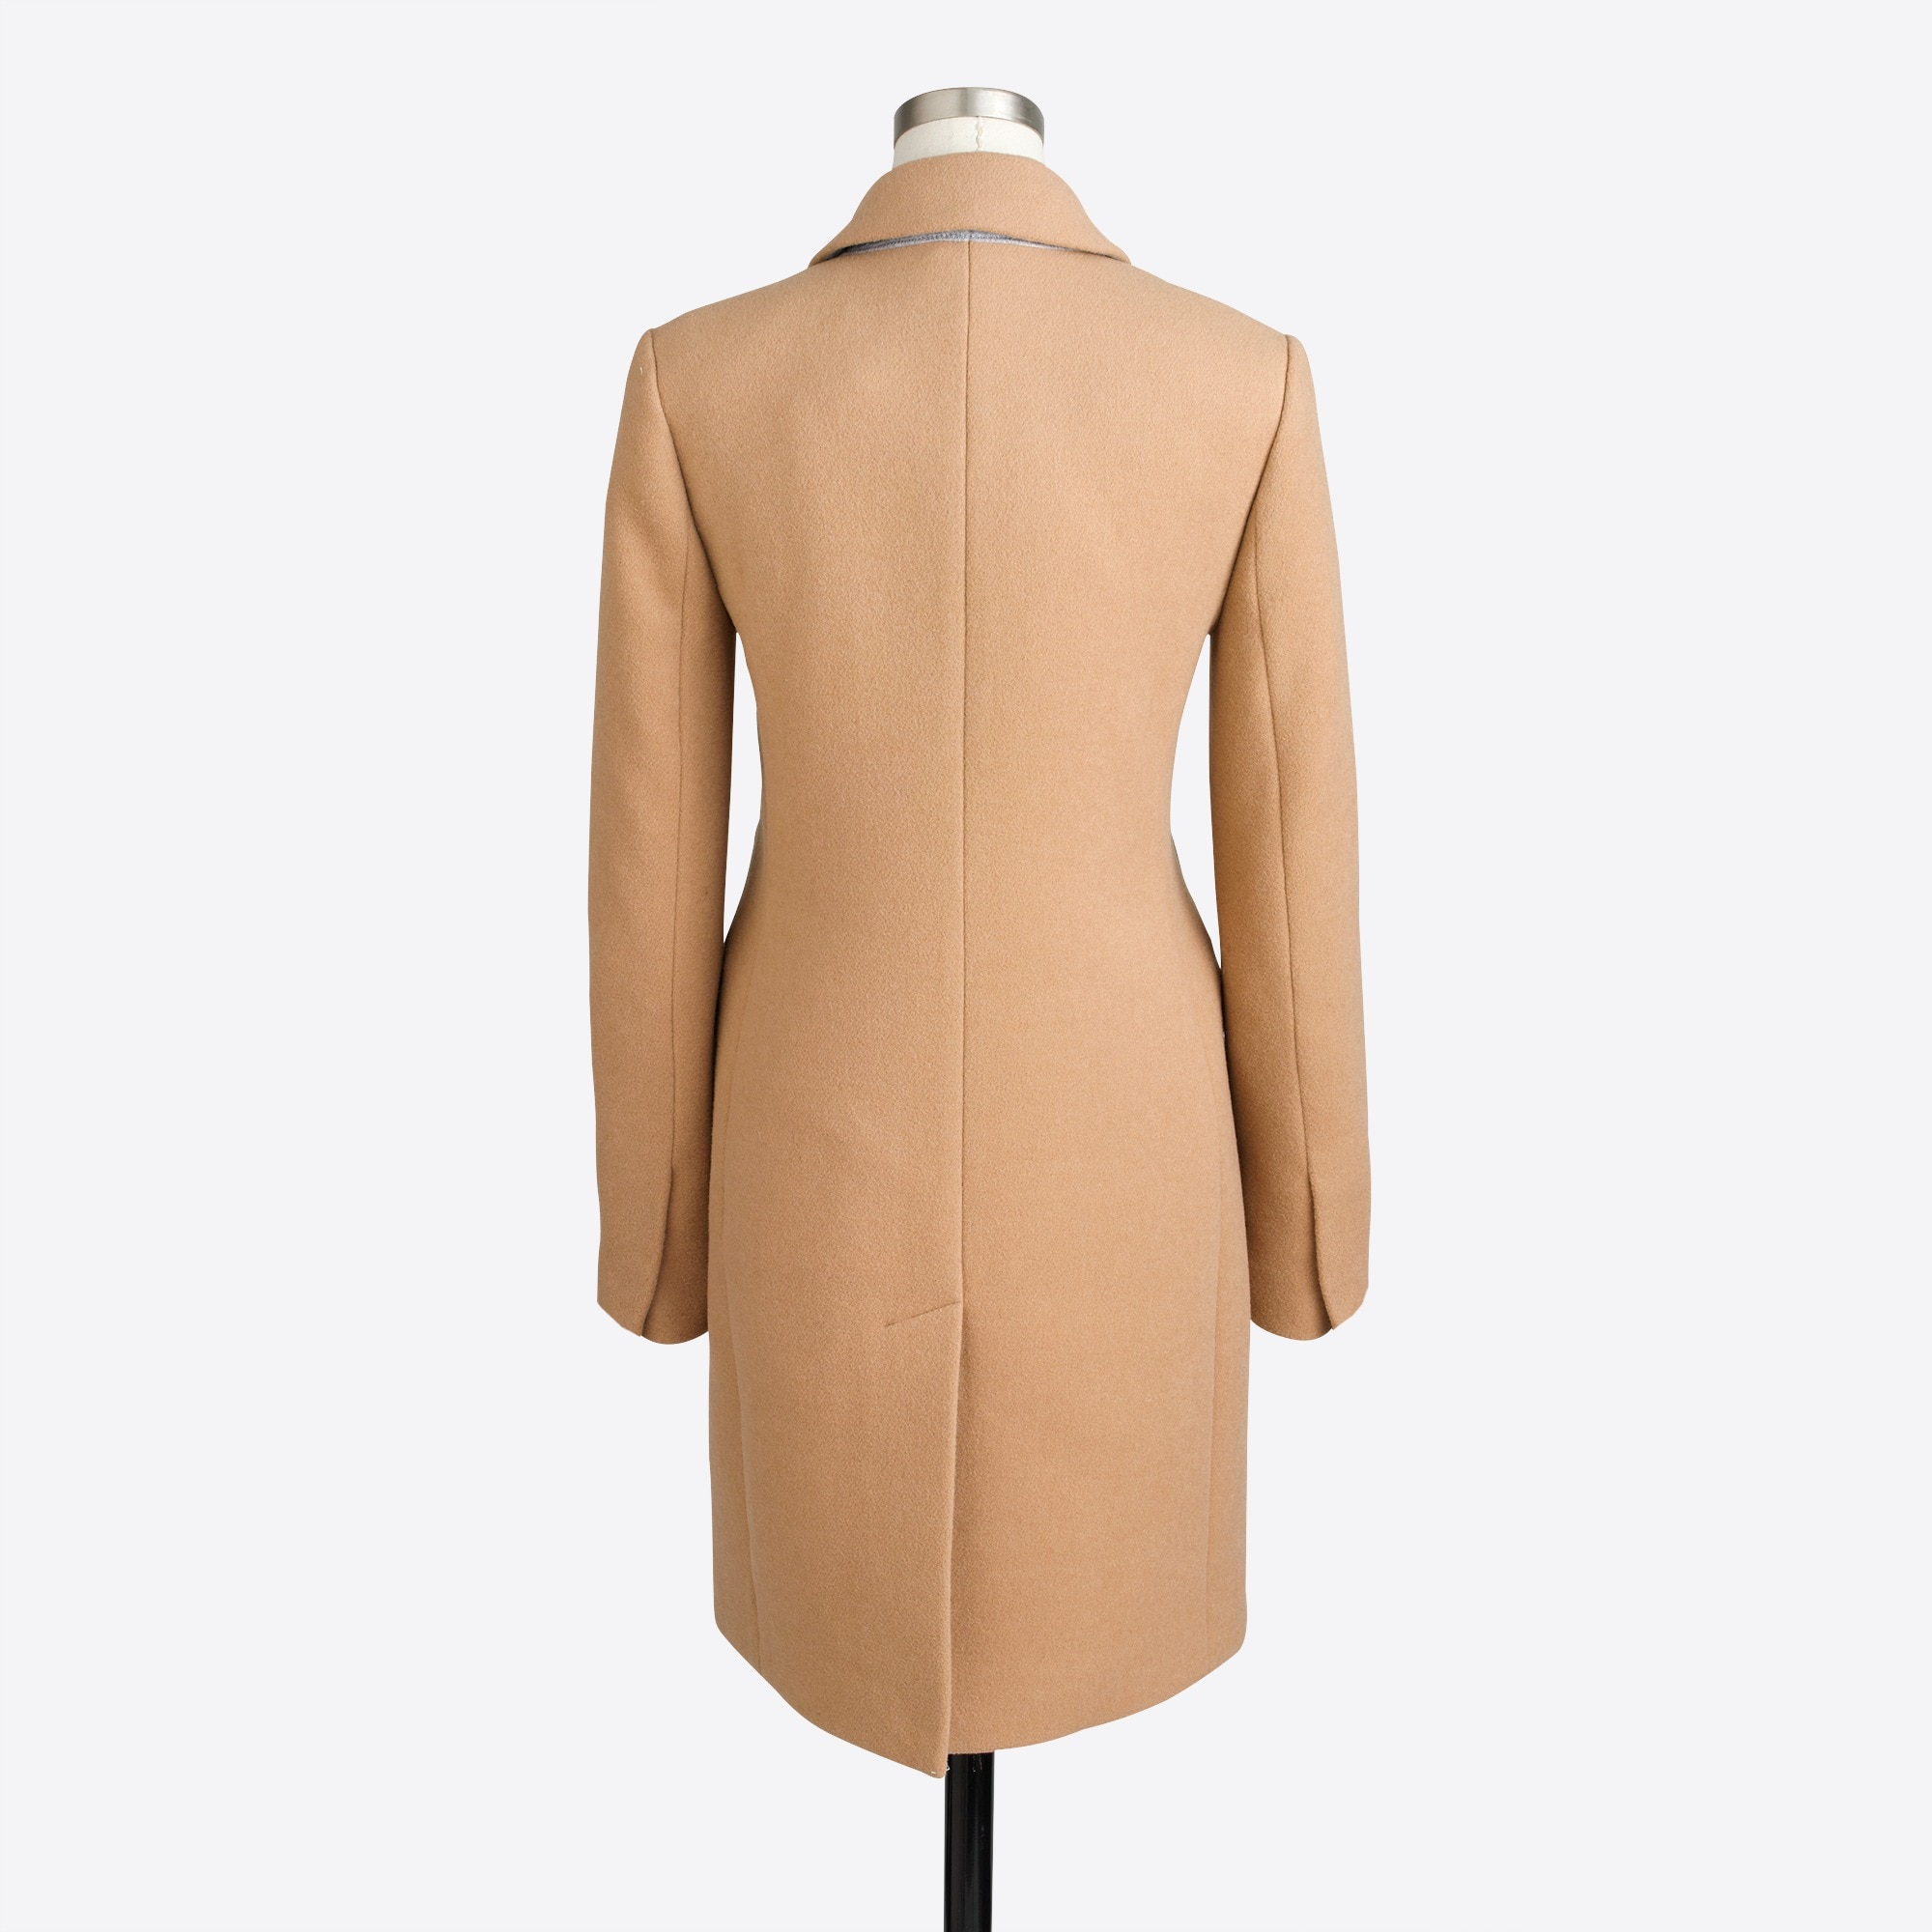 Image 3 for Wool topcoat